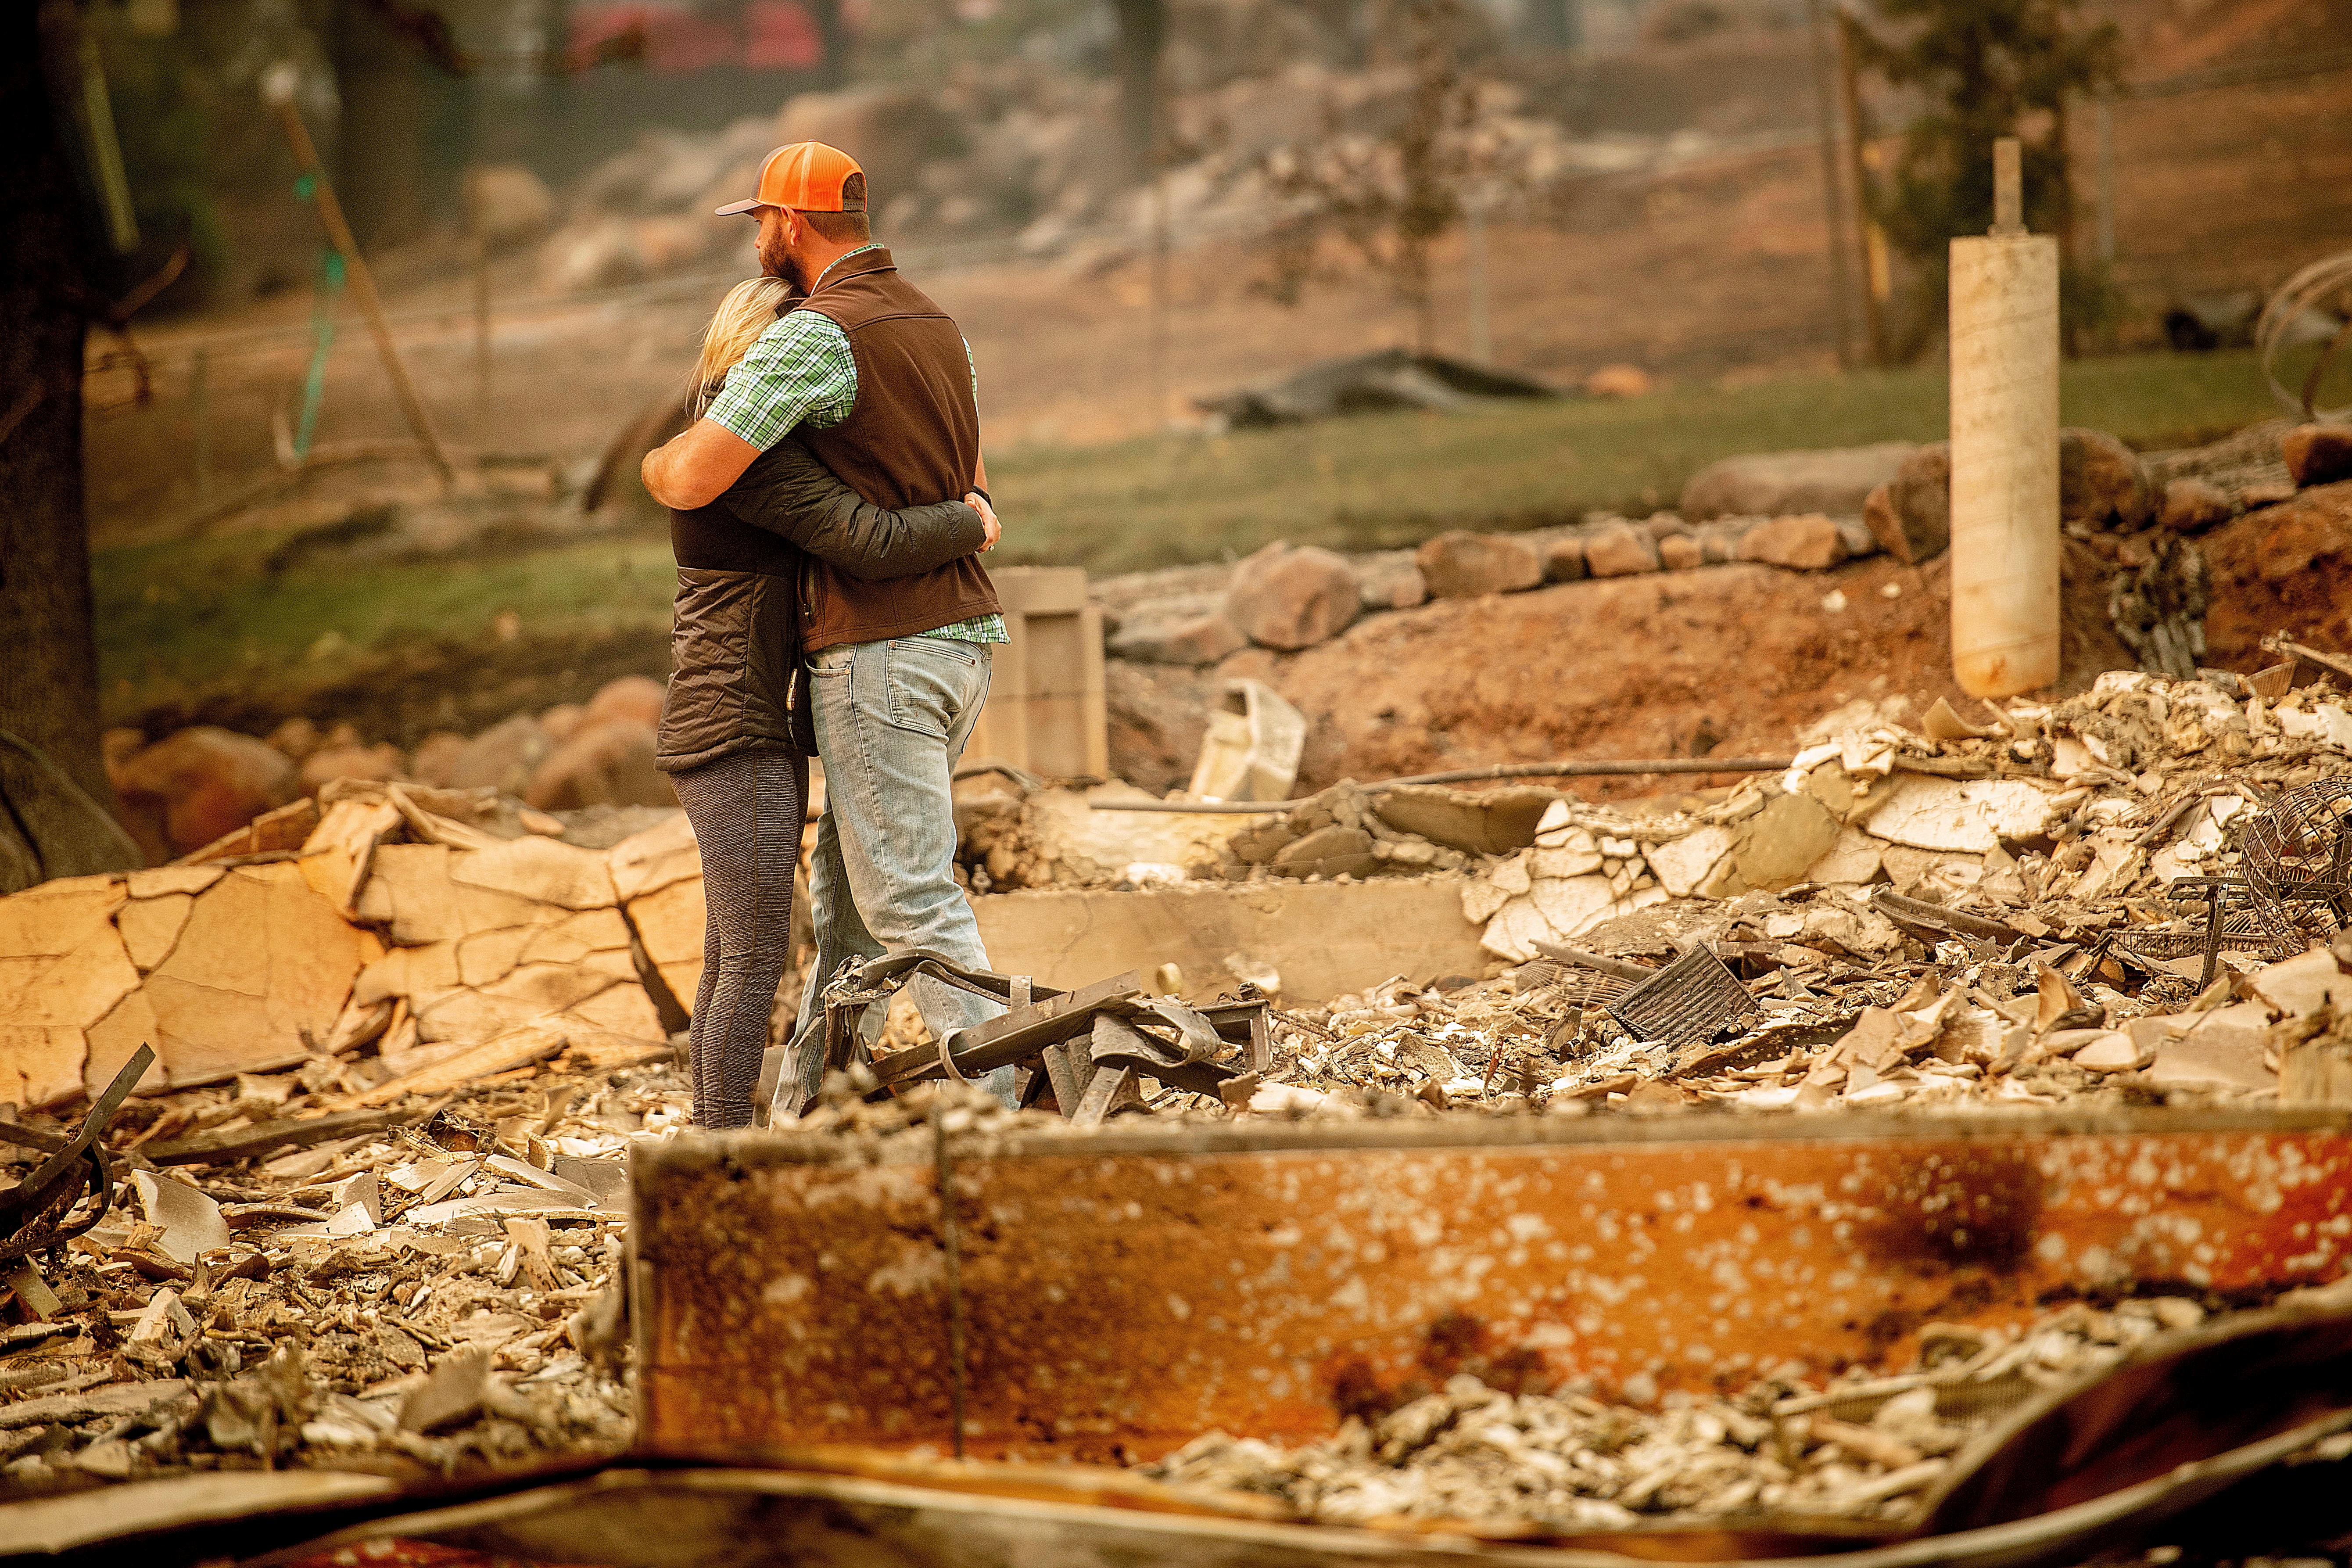 Chris and Nancy Brown embrace while searching through the remains of their home, leveled by the Camp Fire, in Paradise, Calif., on Monday, Nov. 12, 2018. As the fire approached, Nancy Brown escaped from the home with her 2-year-old and three dogs. (AP Photo/Noah Berger)